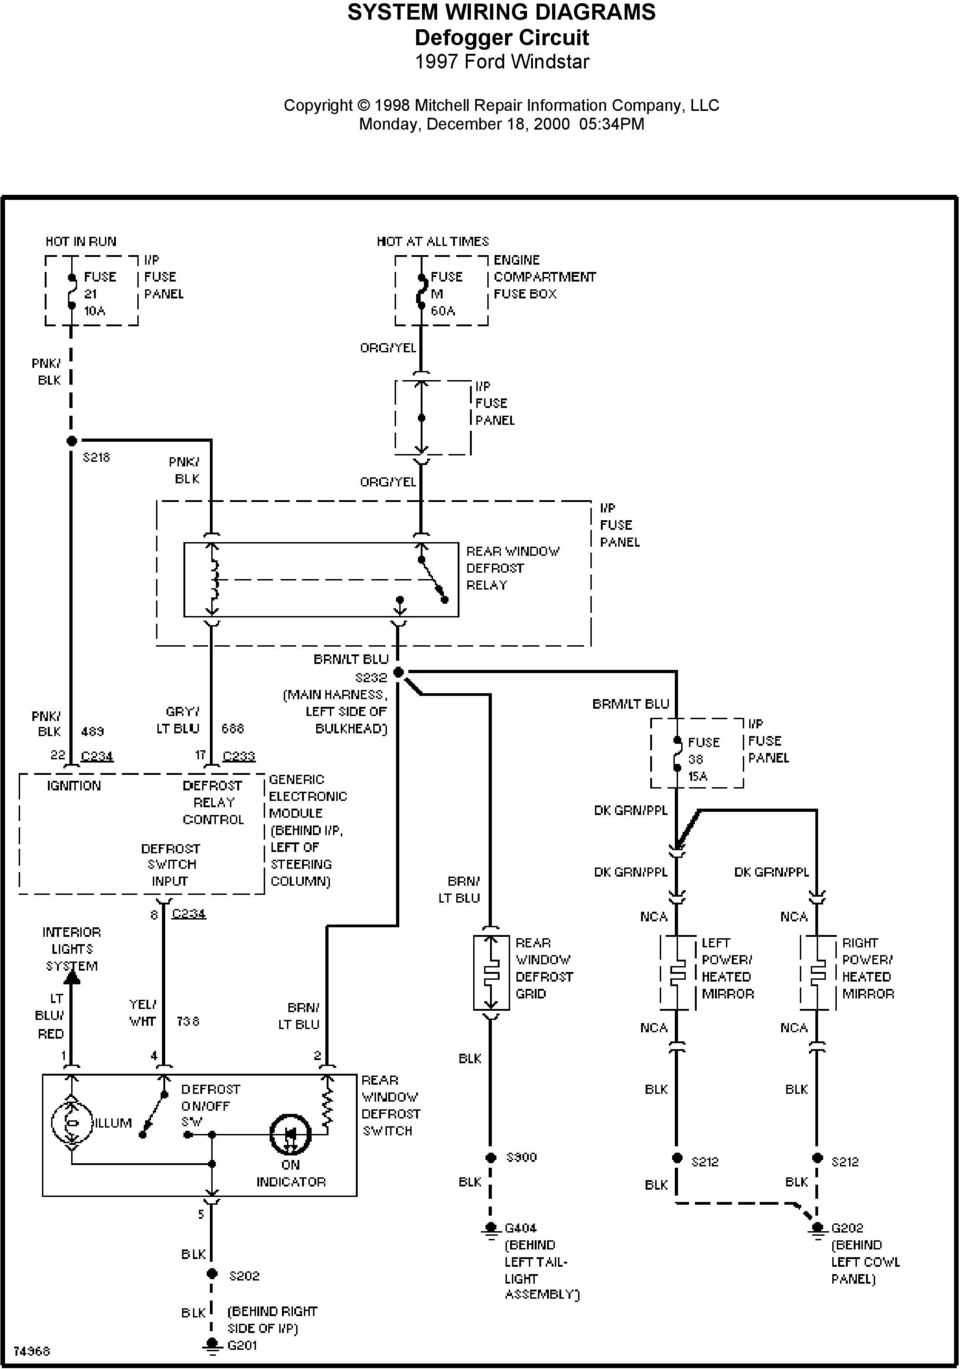 System Wiring Diagrams Air Conditioning Circuits 1997 Ford Windstar Year 9 Circuit Electronic Suspension Monday December 18 35pm